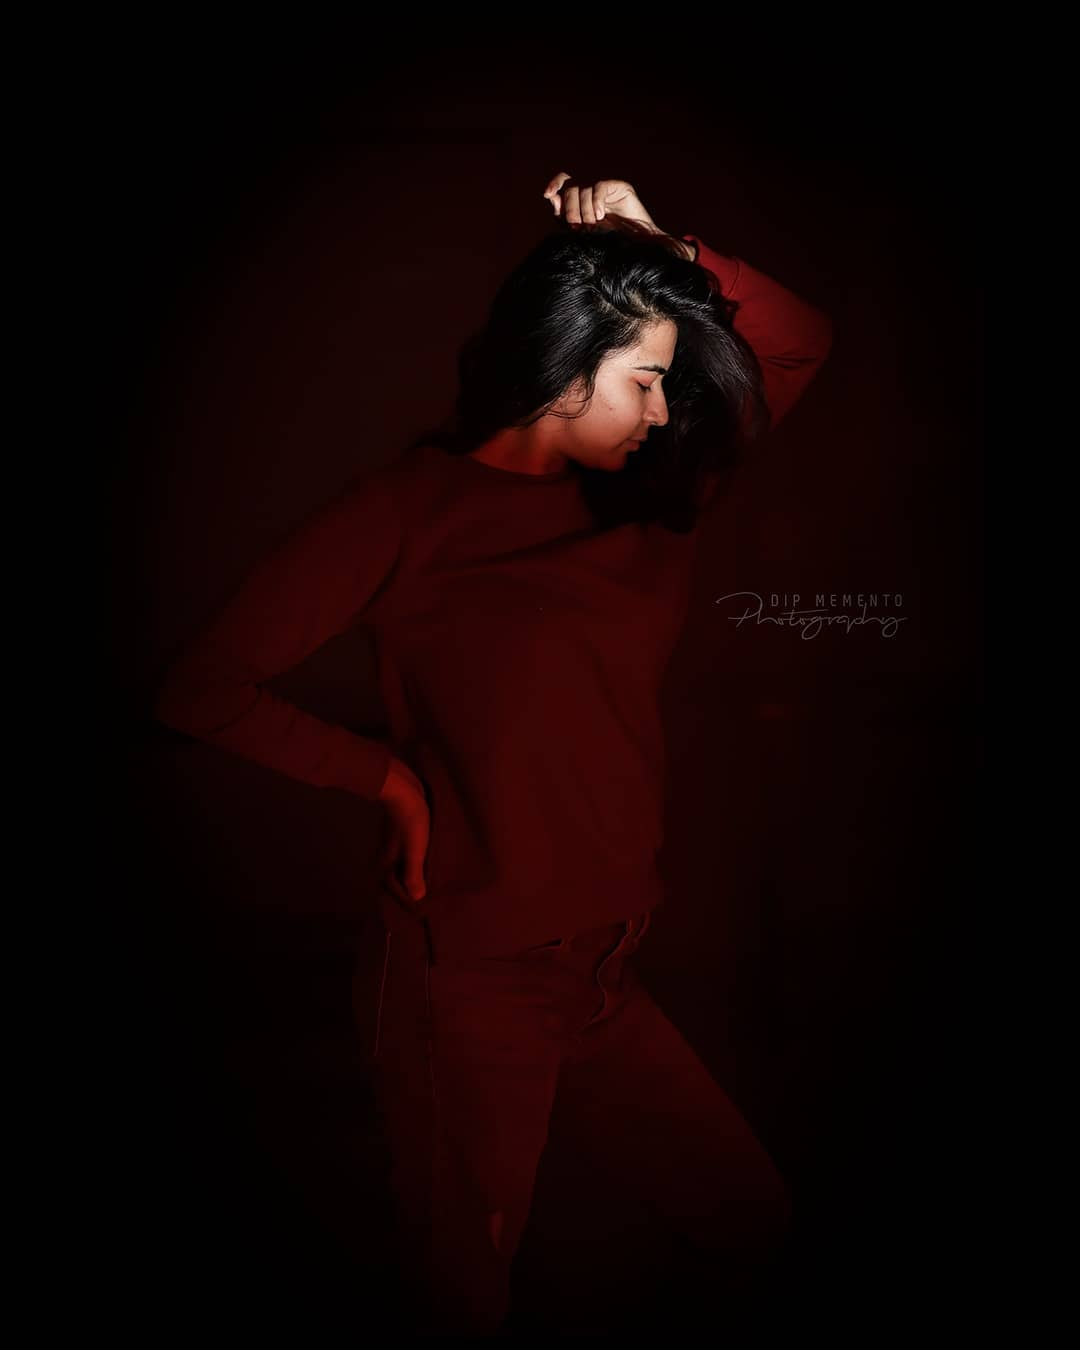 For most of history, anonymous was a woman. -Virginia Woolf . . Face :@komalpatel_16 Shoot:@dip_memento_photography At @aavaryagallery . . #fashion #editorial #fashionable #editorialphotography #conceptshoot #9924227745 #fashionphotographers #model #femalemodel #beauty #pretty #beautymodel #india_undiscovered #mypixeldairy #beautifulgirls #portraitmood #dipmementophotography #photoshoot #ipofficial #photography #modelling #worldofportraits #models  #popxoblogger #ahmedabad #_ip #photographylovers #portfolioshoots #ftwotw #photoshoots. . . @portrait_star @portrait_shot @portraitmood @portraitpage @portraits_vision @portrait_ig @moodyports @portraitmood @portrait_shots @pursuitofportraits @portraitgames @portrait_star @discoverportrait @portraitstream @portrait_planet